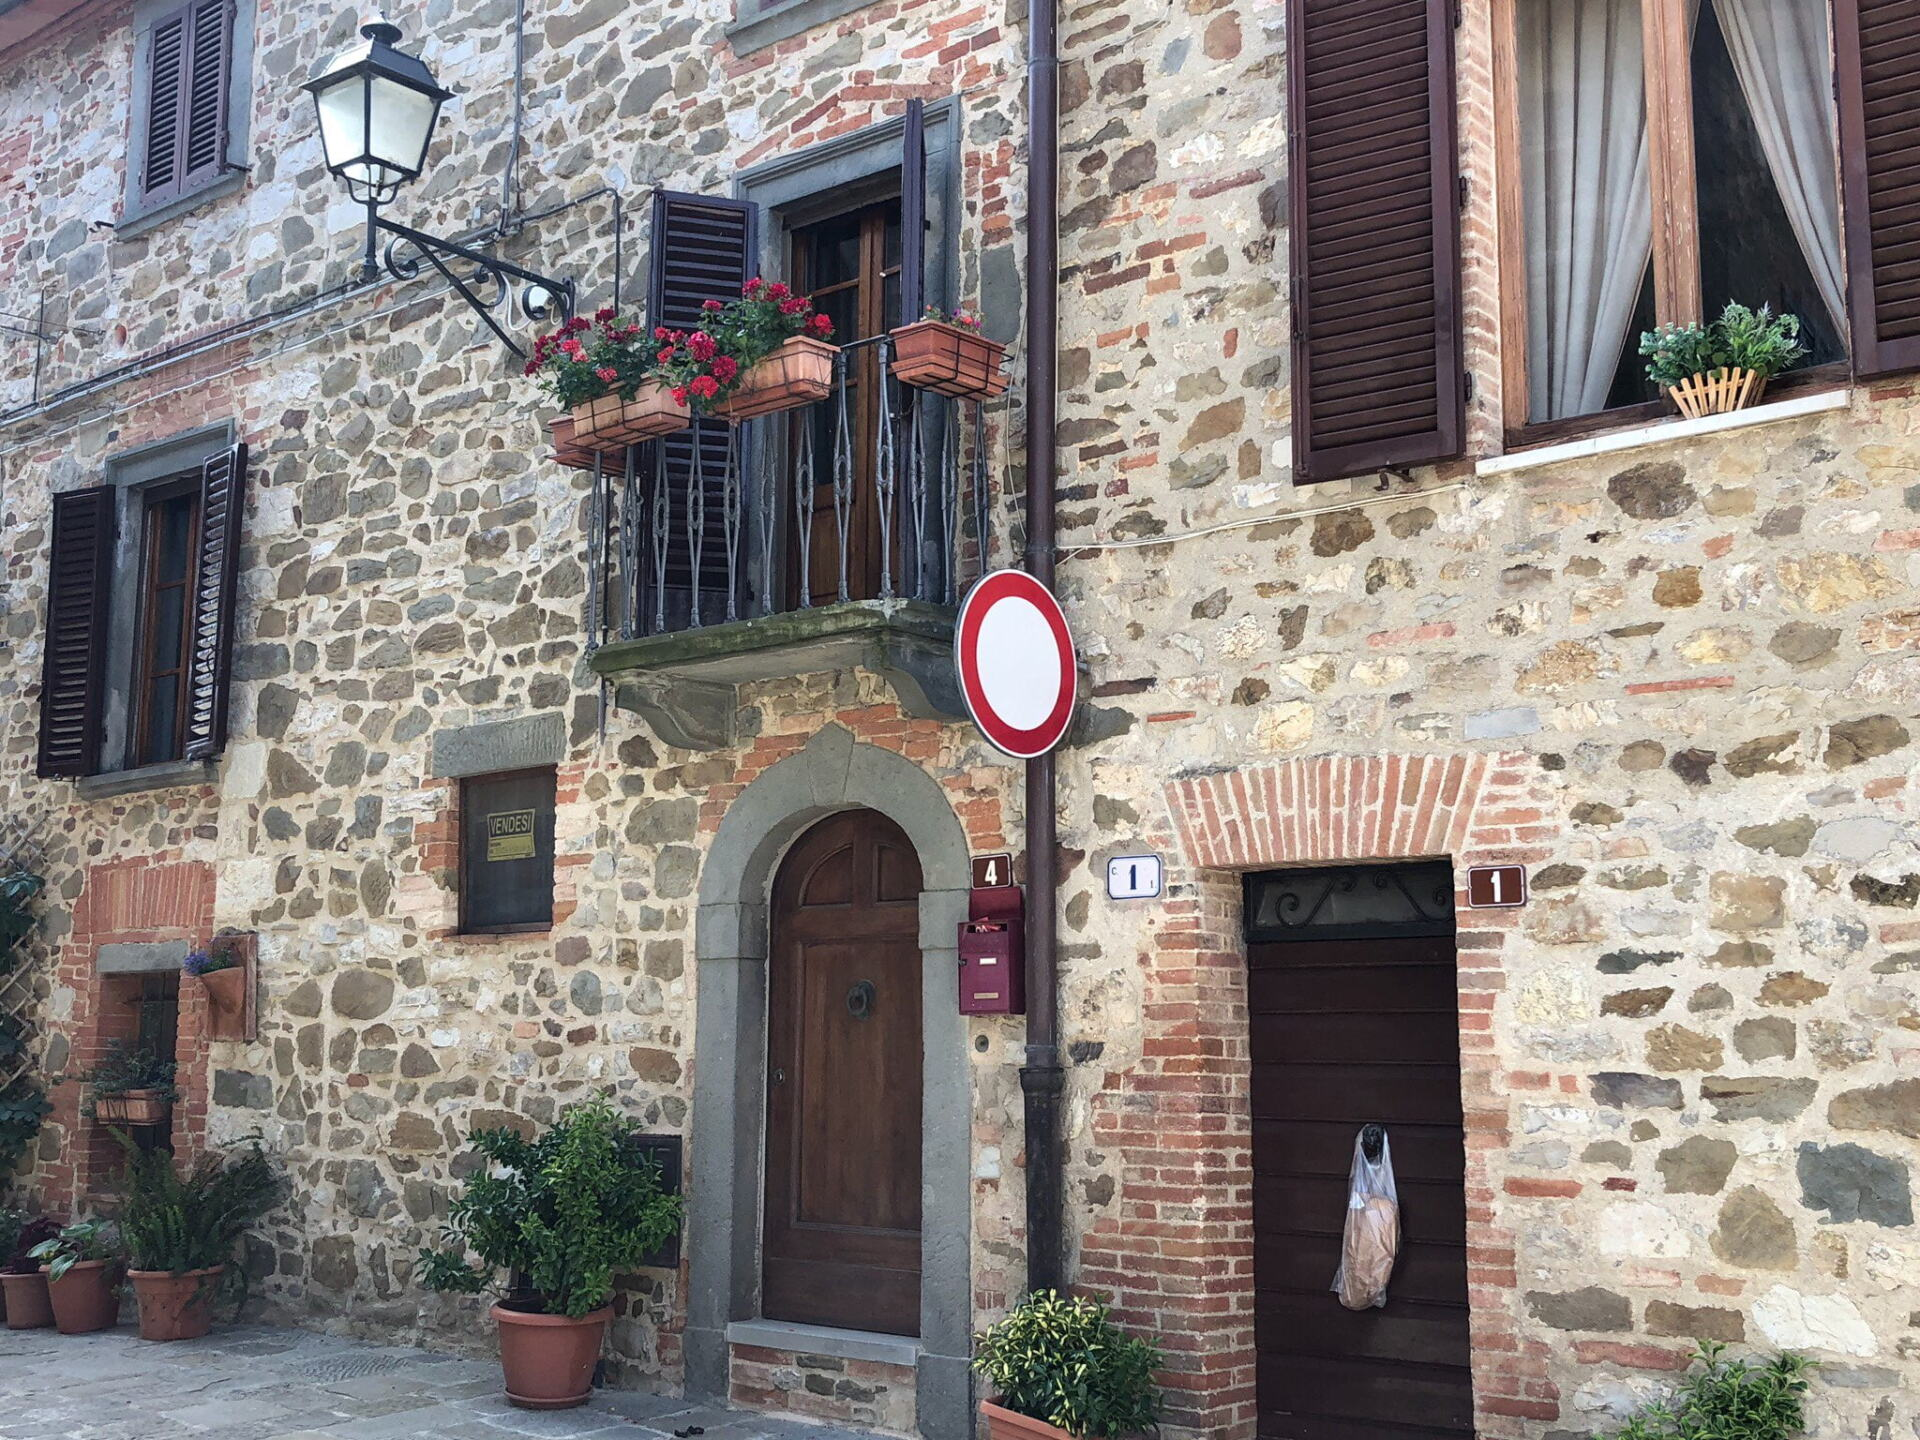 Tuscan stone buildings